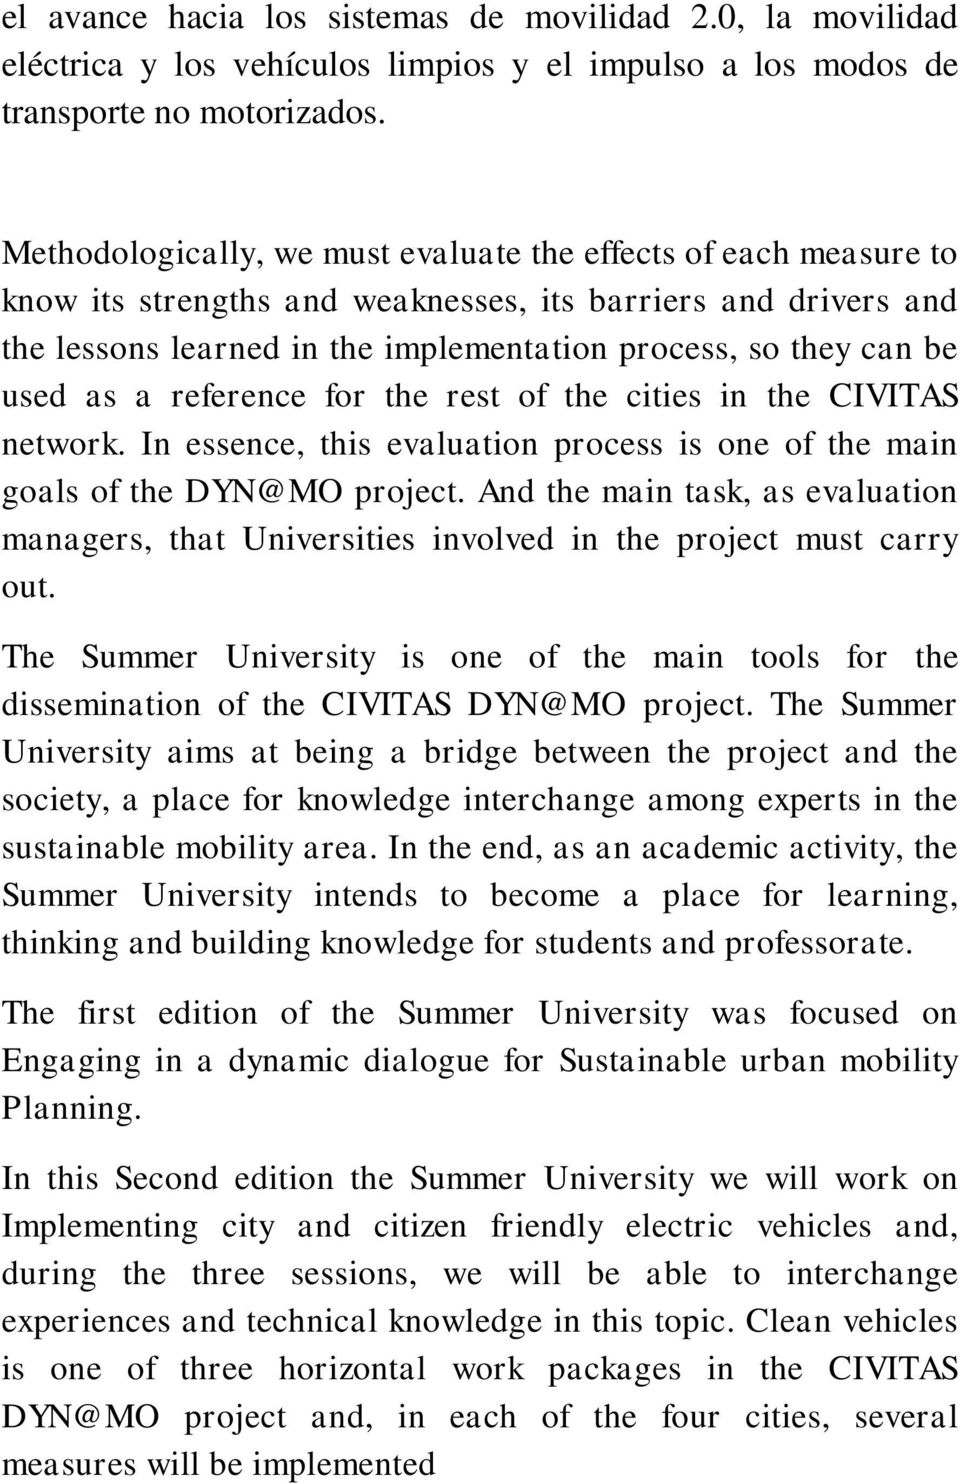 used as a reference for the rest of the cities in the CIVITAS network. In essence, this evaluation process is one of the main goals of the DYN@MO project.